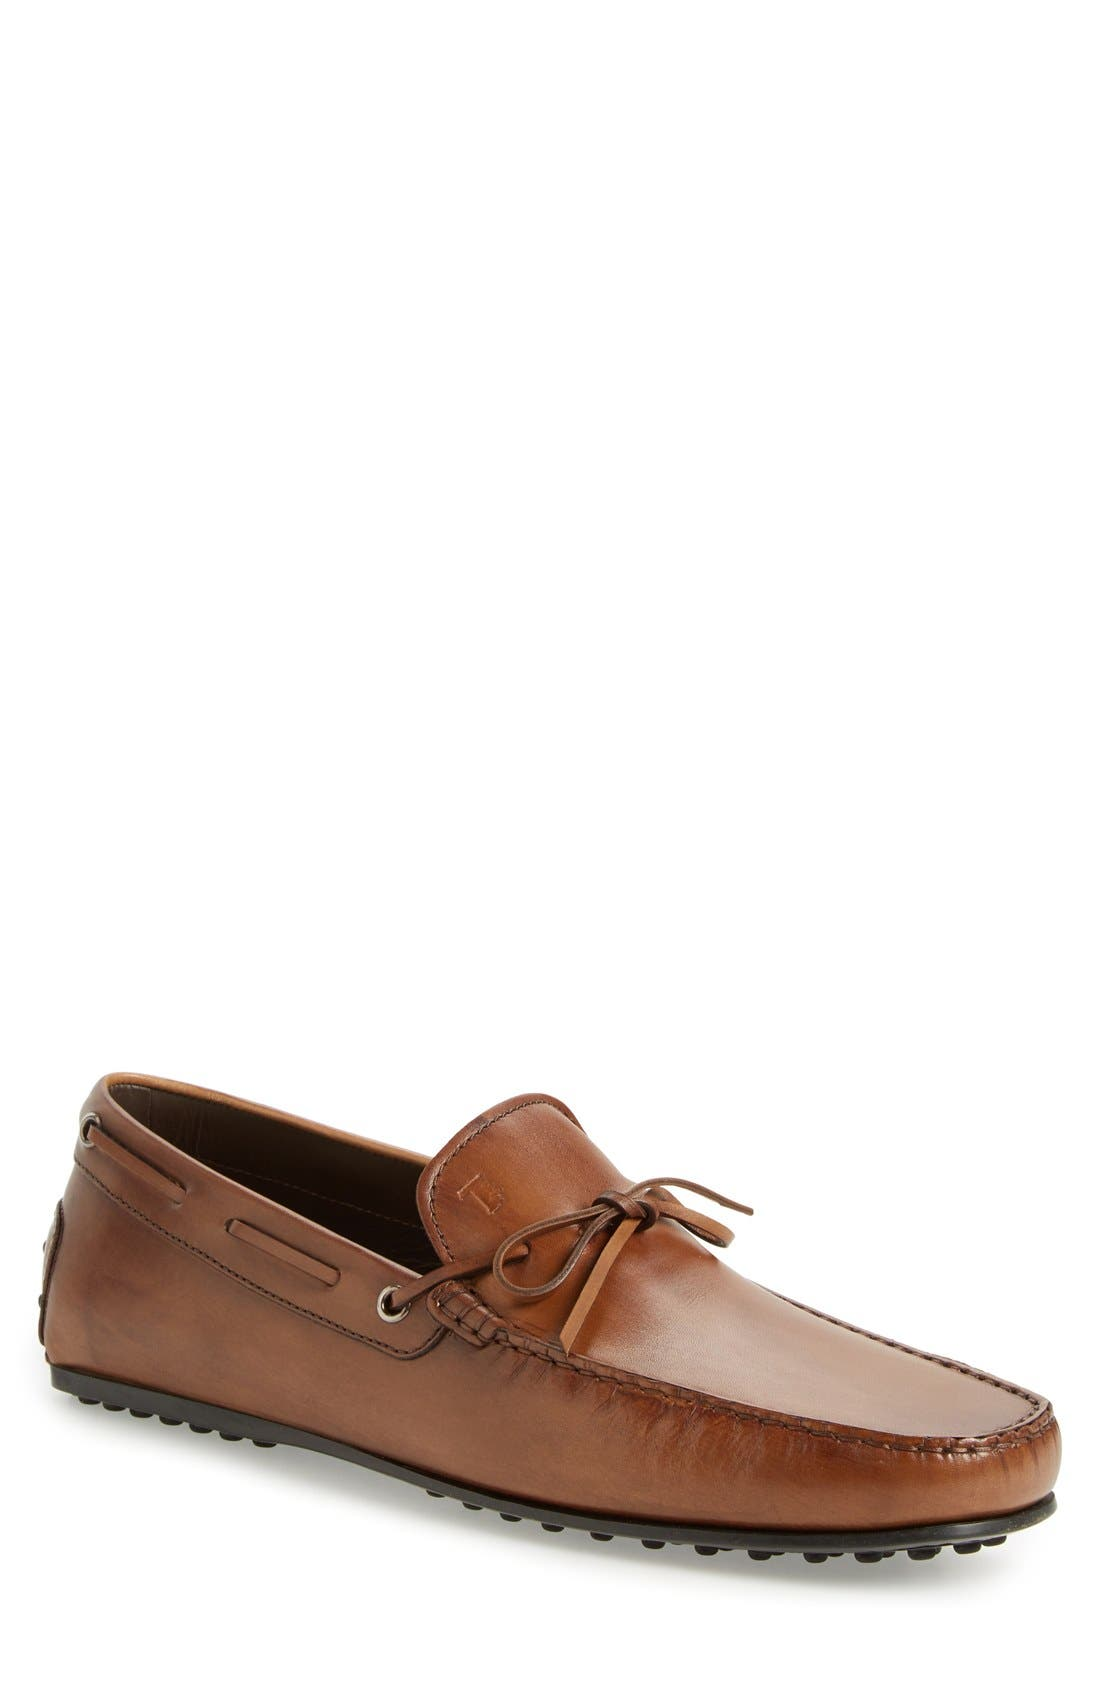 Main Image - Tod's 'City Gommini' Tie Front Driving Moccasin (Men)